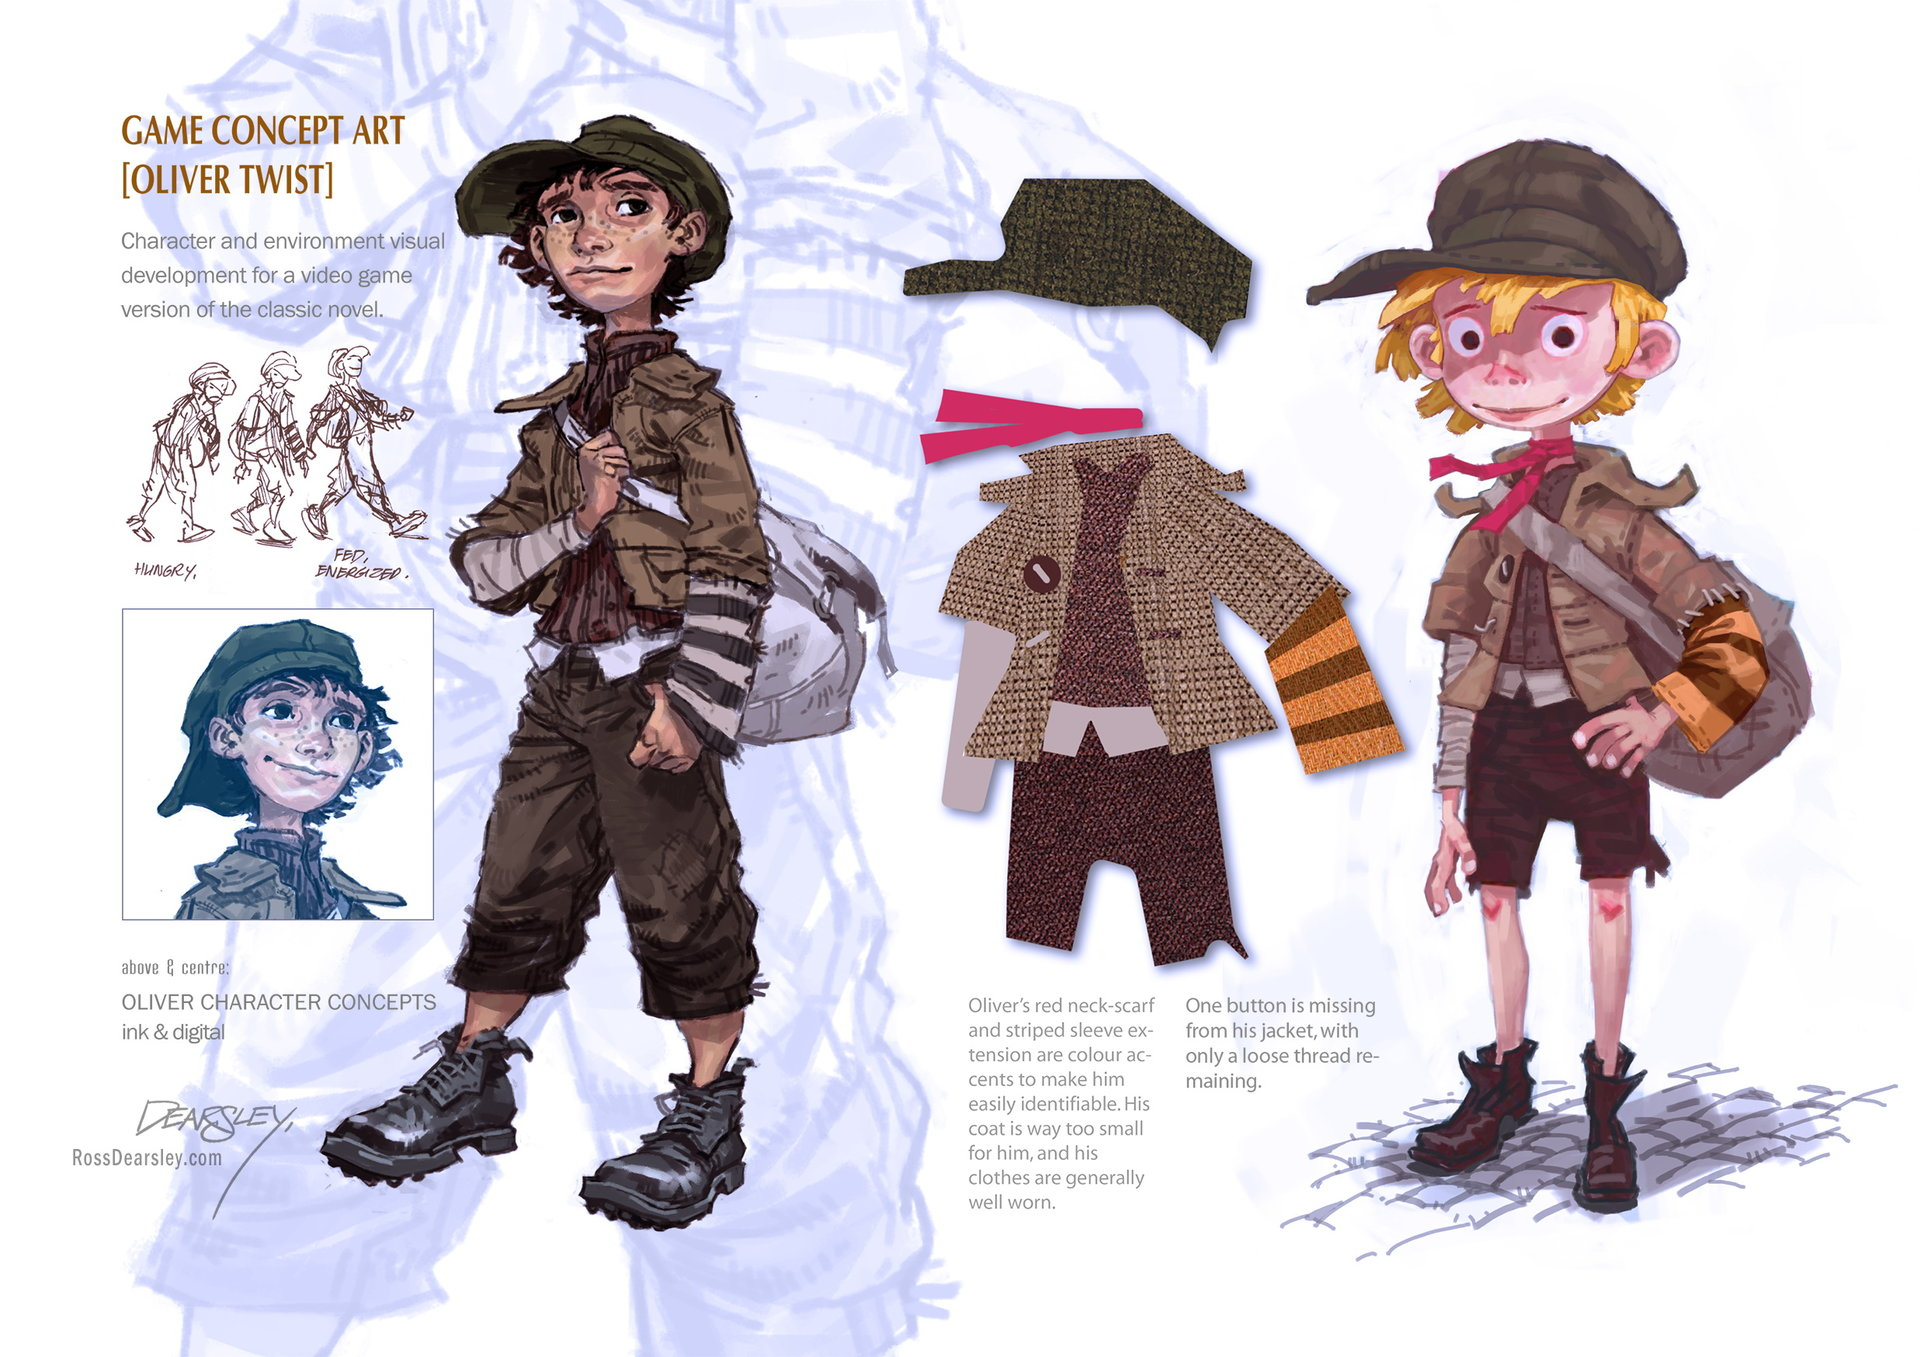 dodger a foil character from oliver twist contrasting every character i possess Start studying allusions and literary terms oliver twist - the artful dodger character opposite or different from the protagonist.